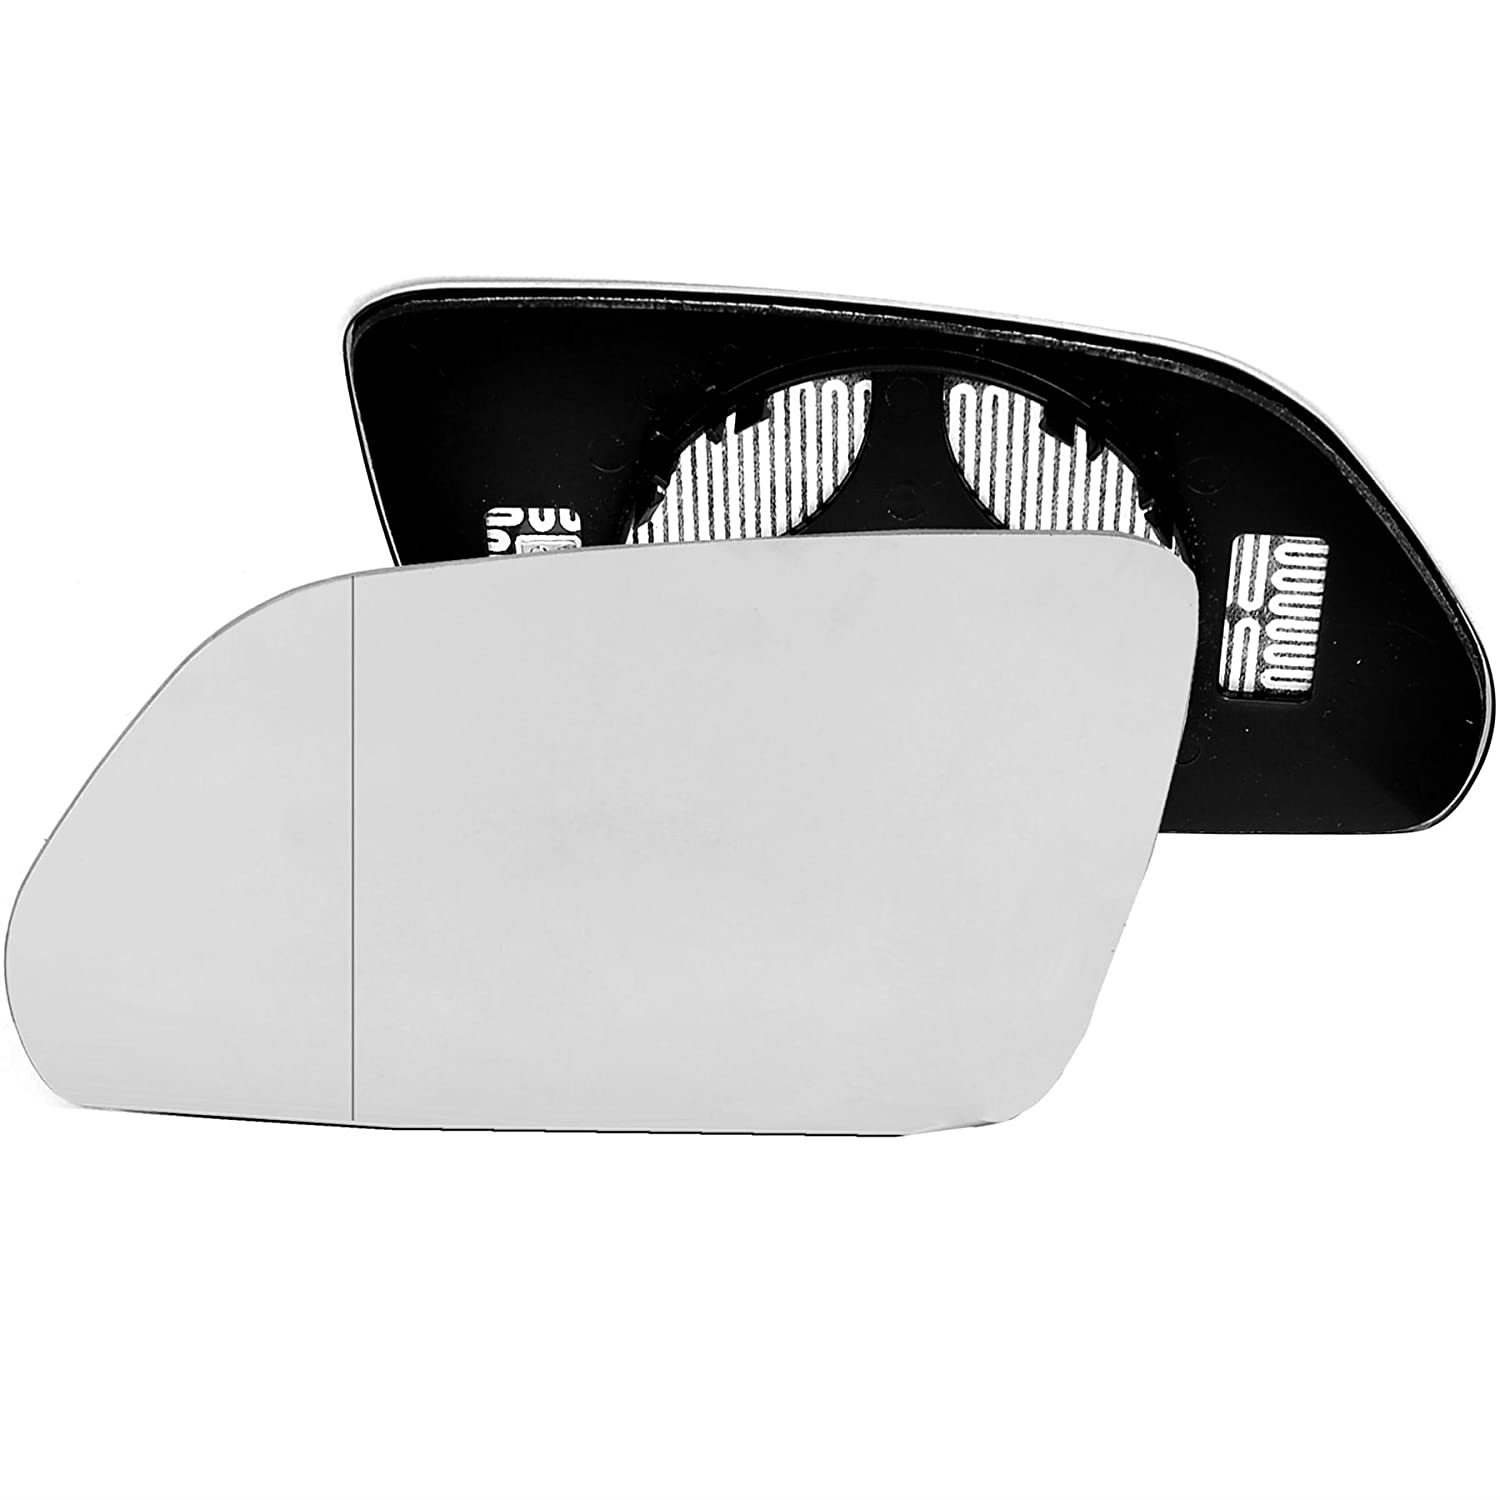 Passenger left hand side Heated wing door Silver mirror glass with backing plate #W-SHY//L-SKAOA09 Clip On